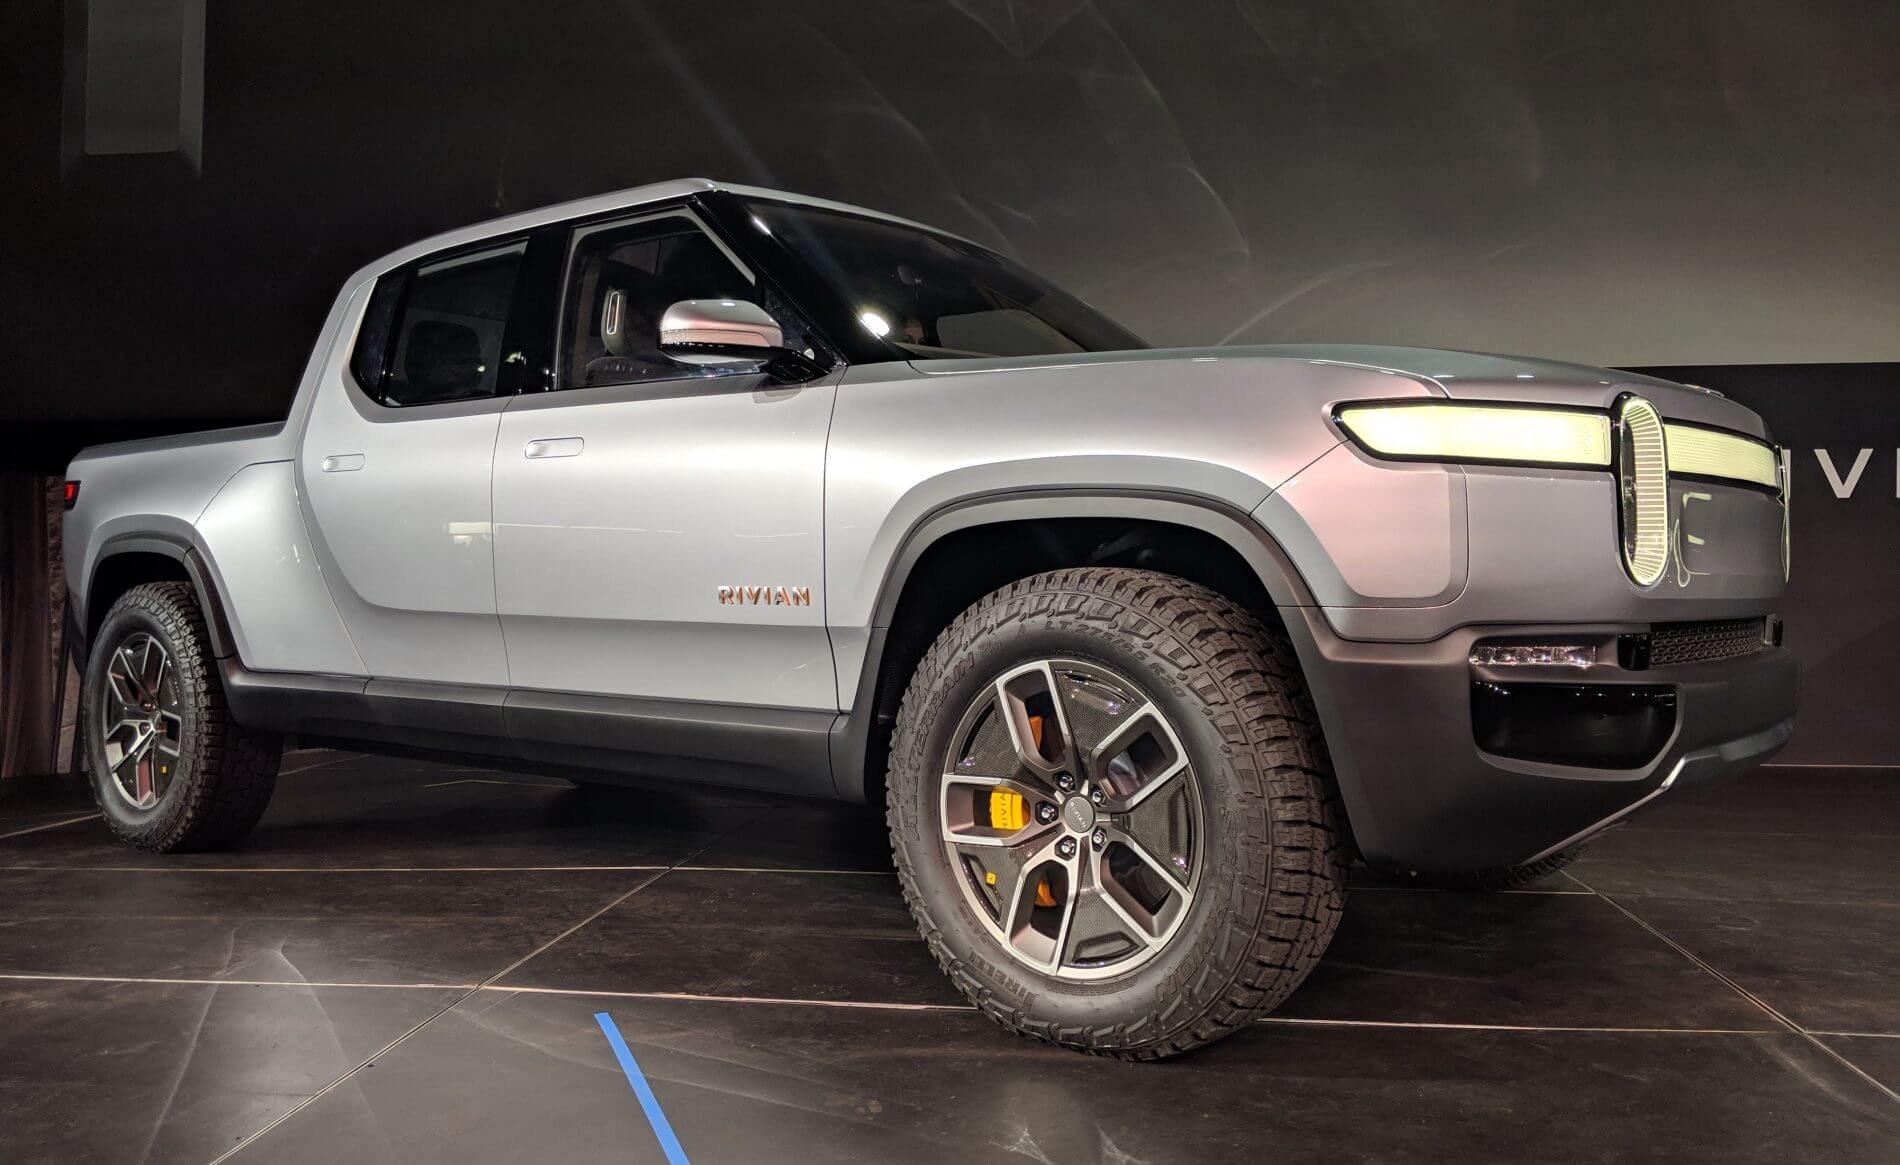 Amazon and GM may help fund an electric pickup truck by Rivian - TechSpot